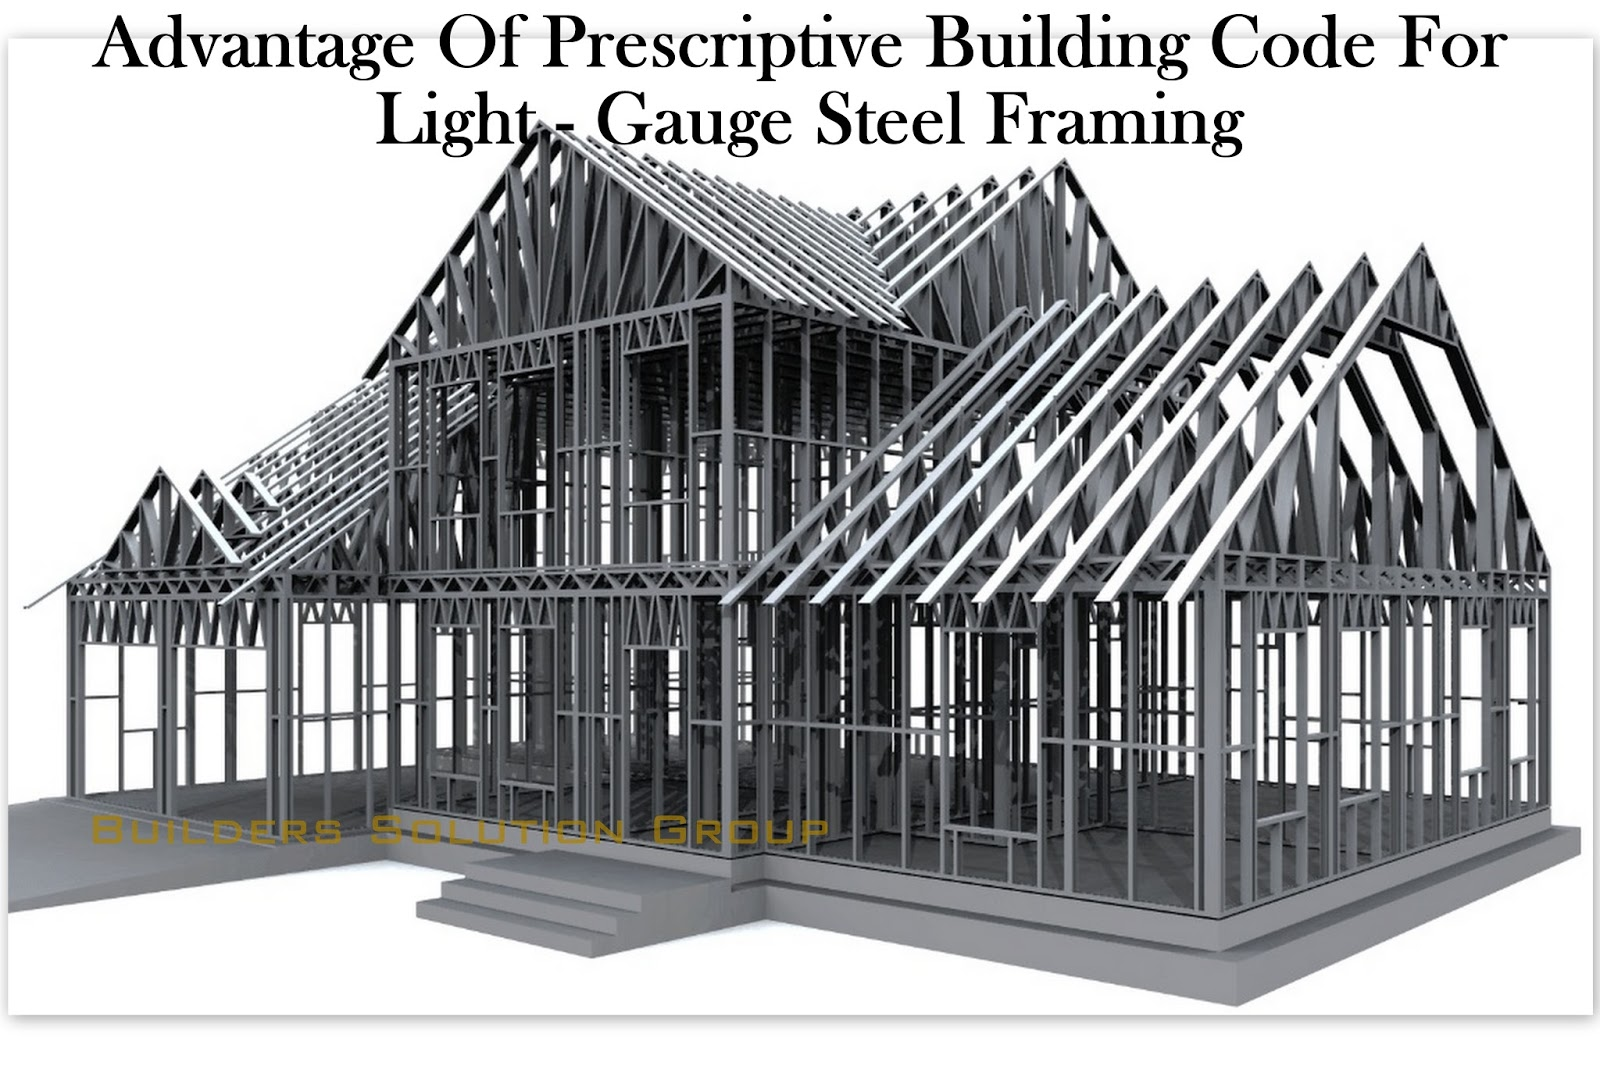 Advantage Of Prescriptive Building Code For Light Gauge